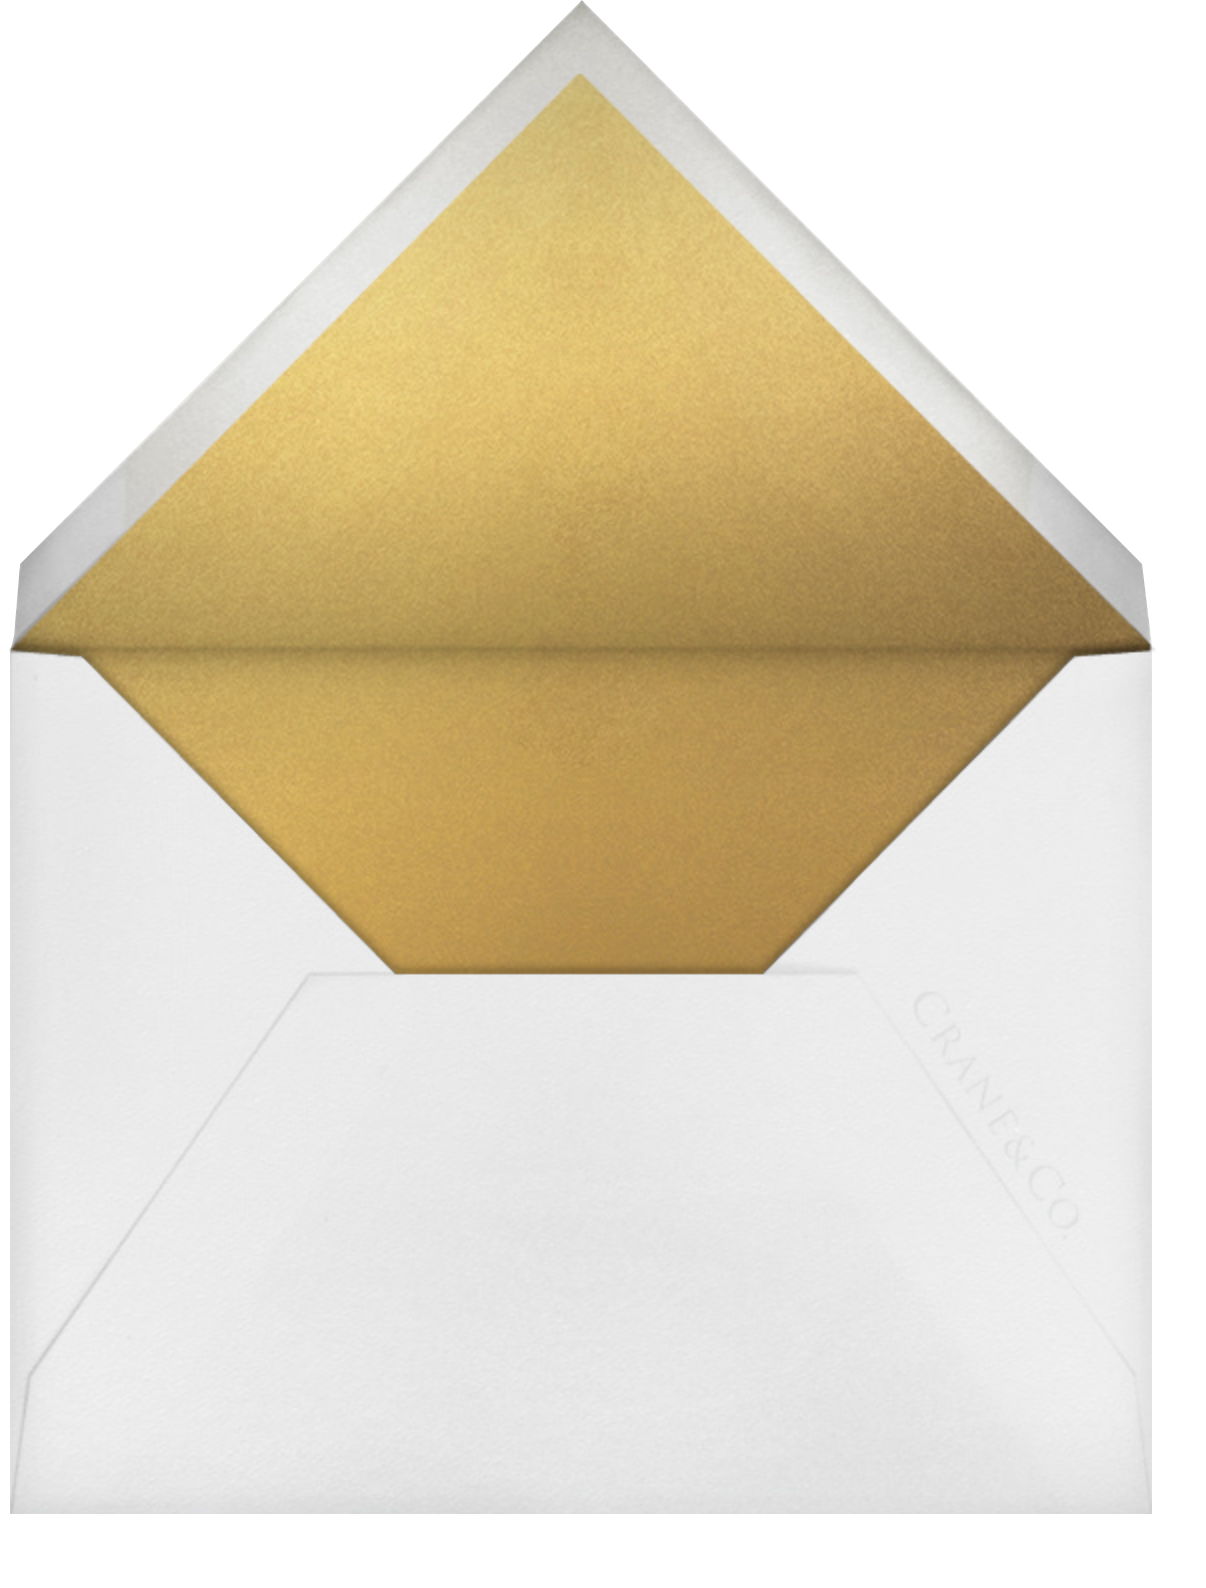 Thea (Invitation) - Paperless Post - All - envelope back